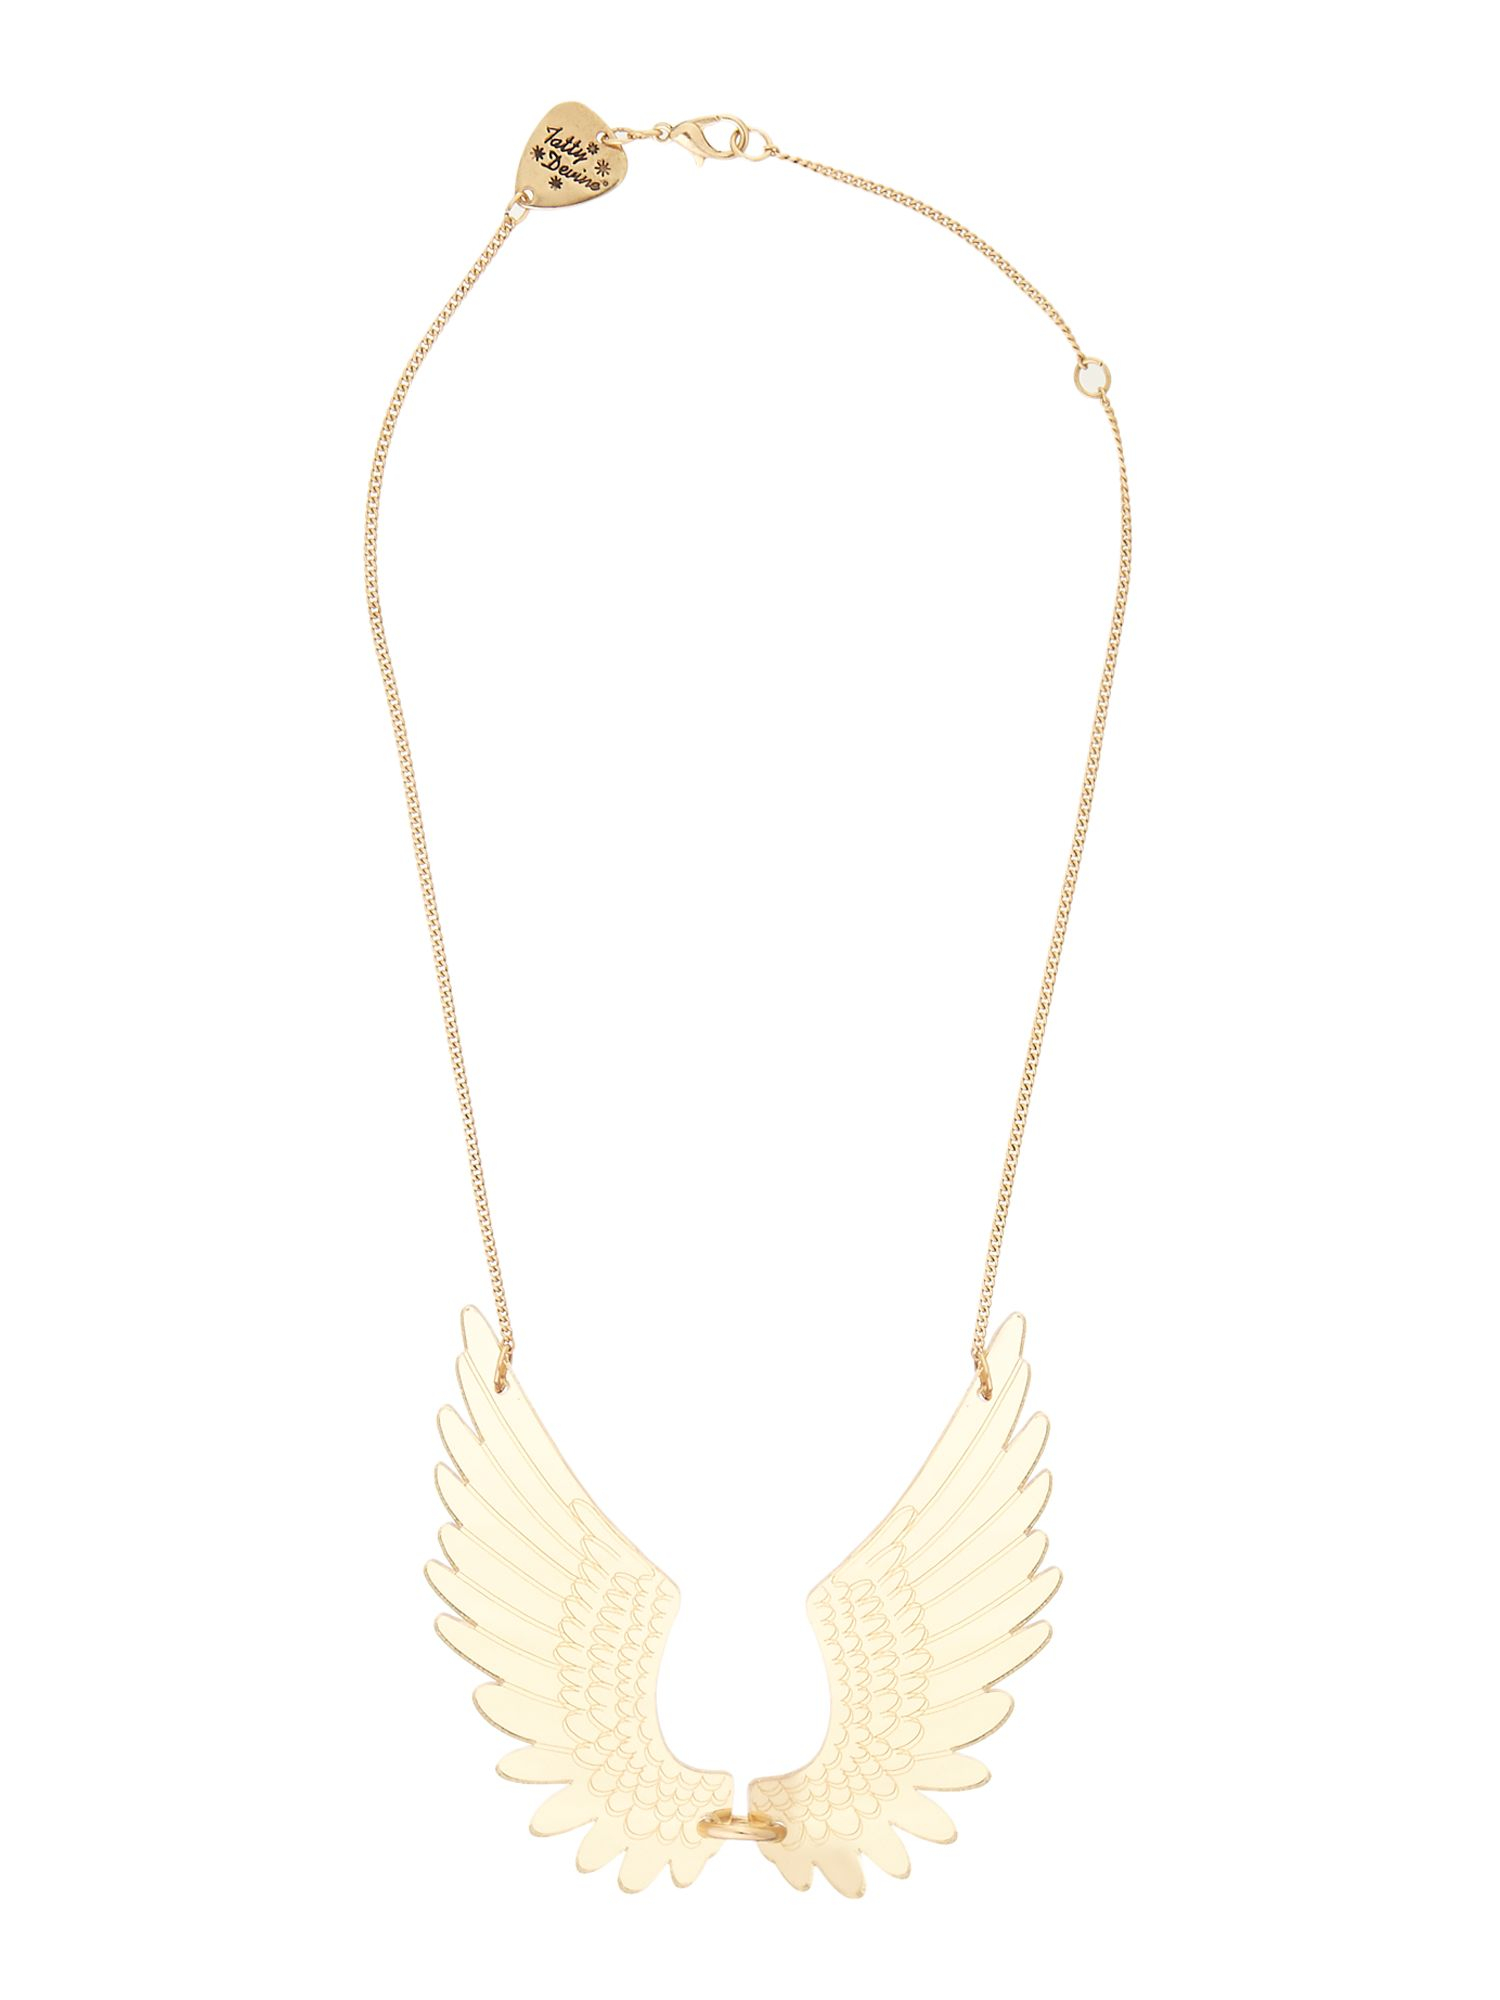 Tatty Devine Pegasus Large Gold Necklace in White